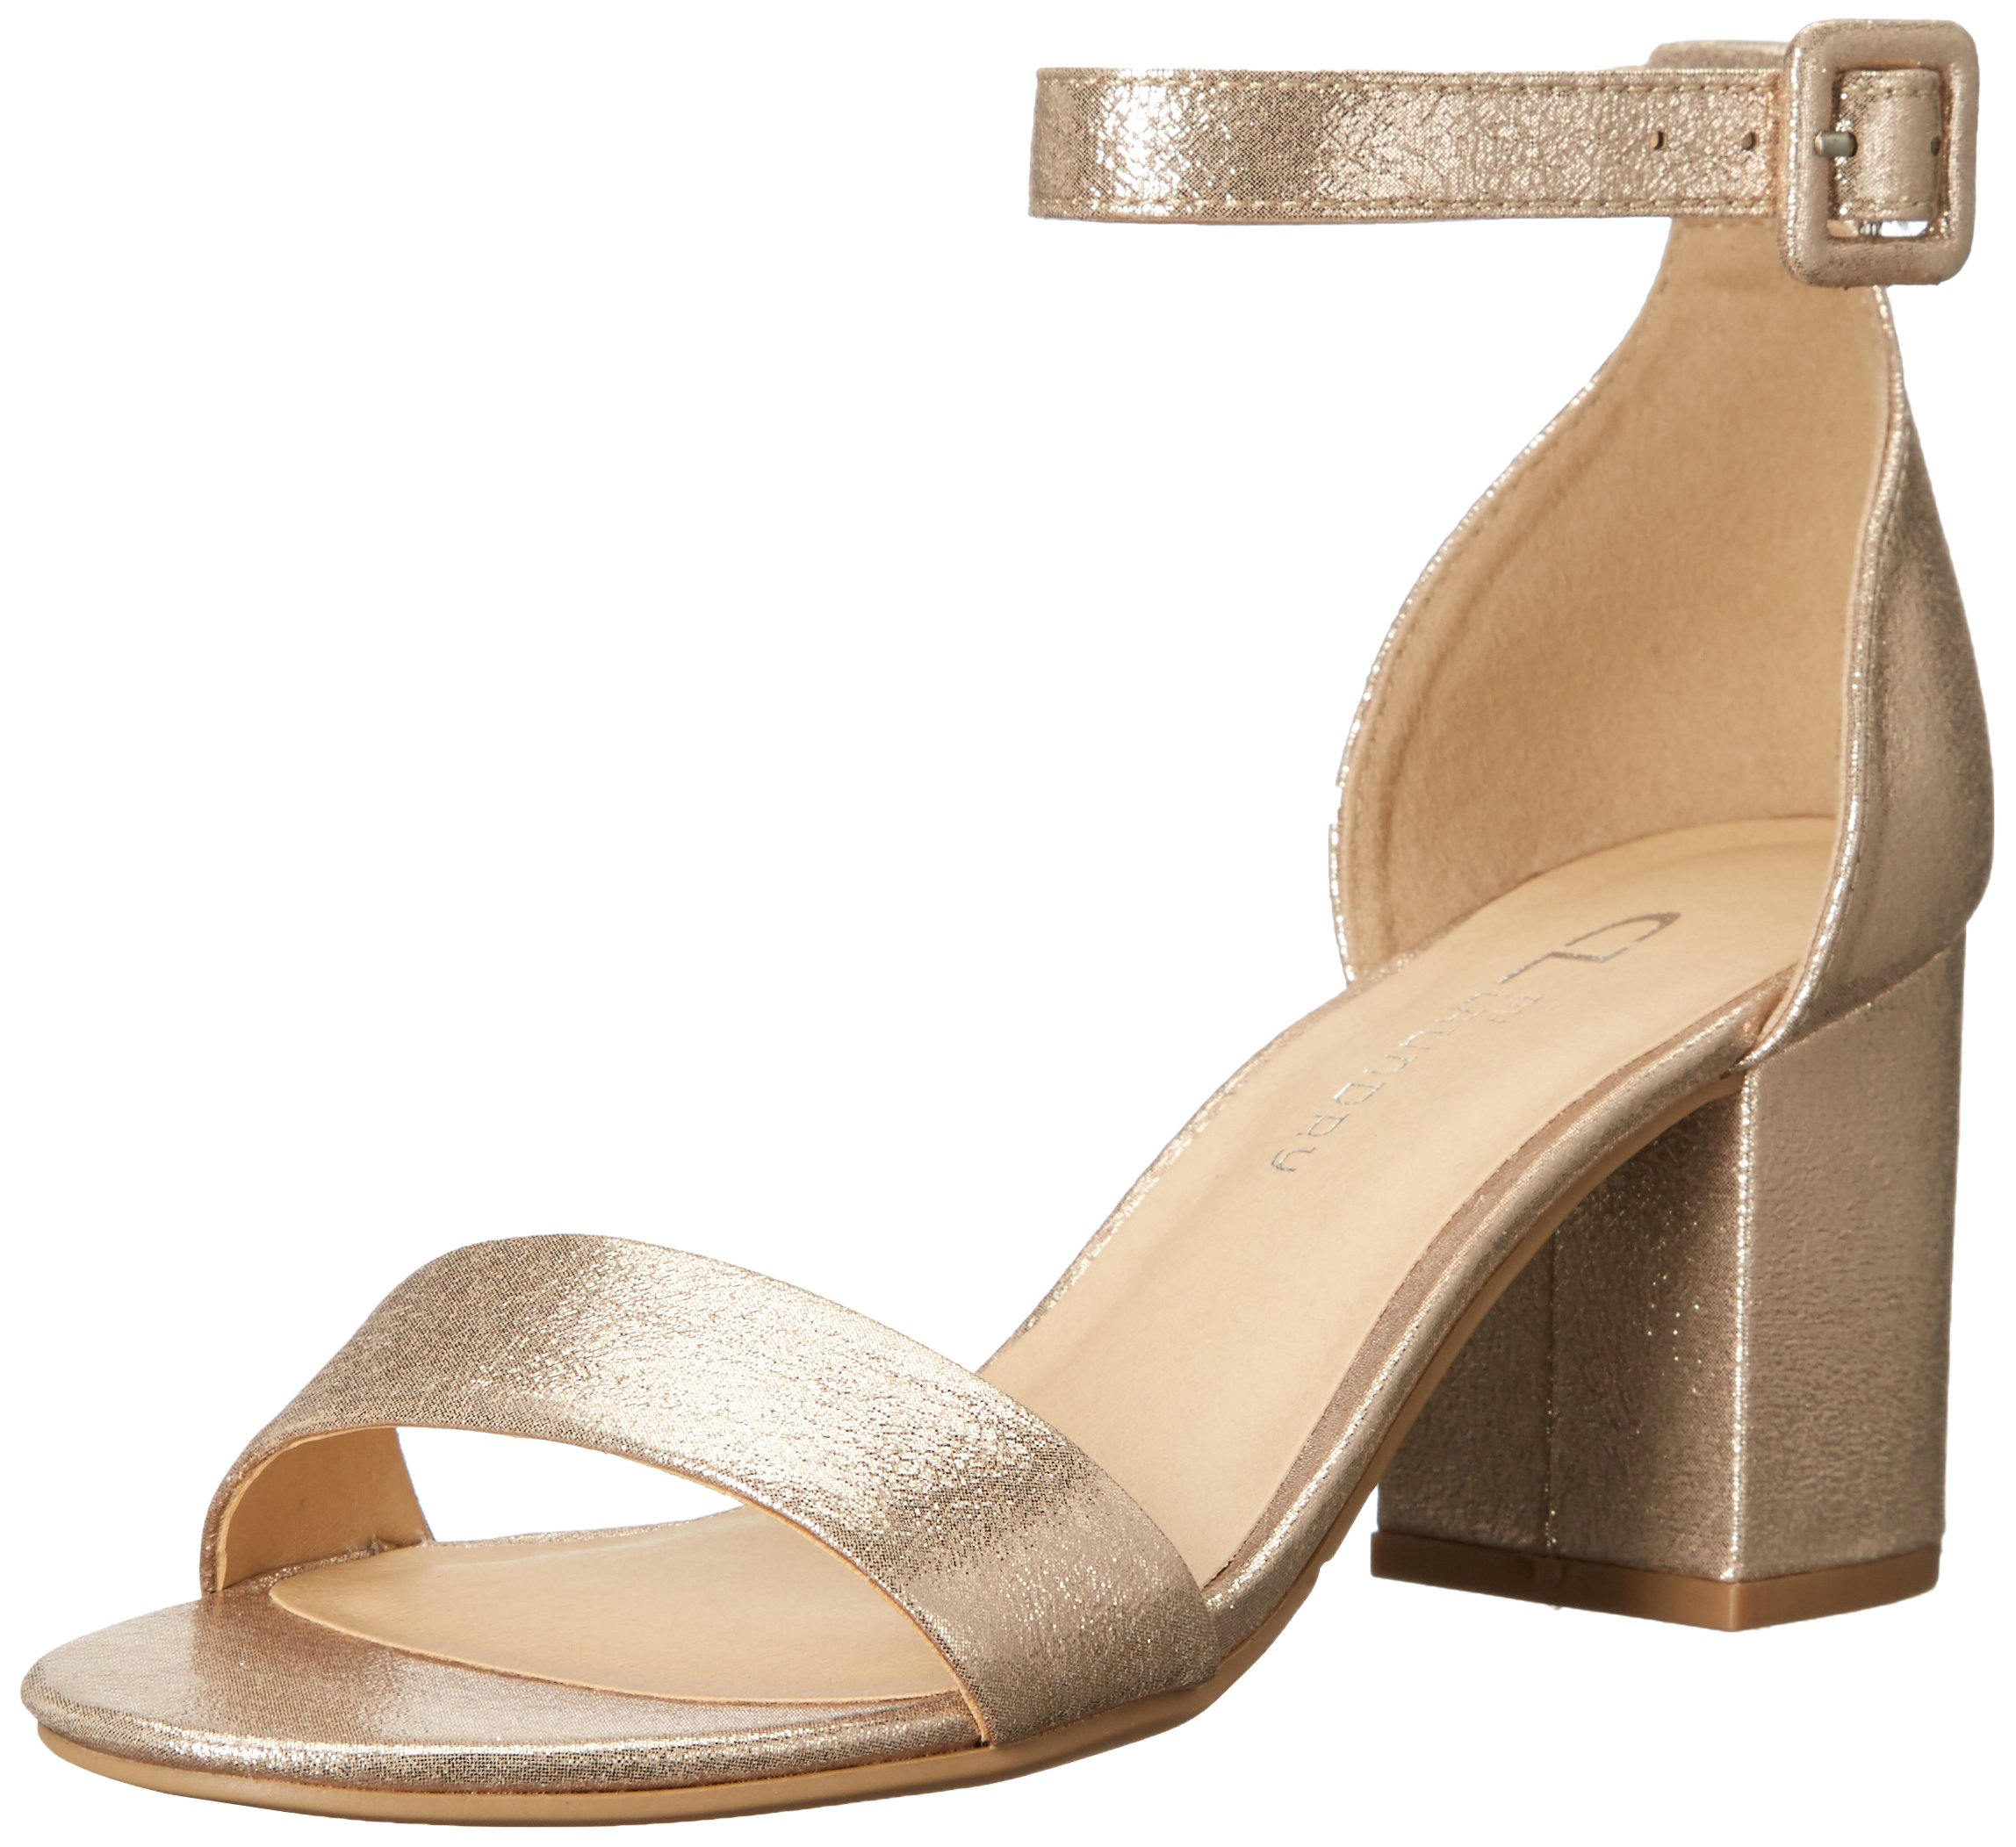 CL by Chinese Laundry Women's Jody Dress Sandal, Light Gold Starstone, 9 M US